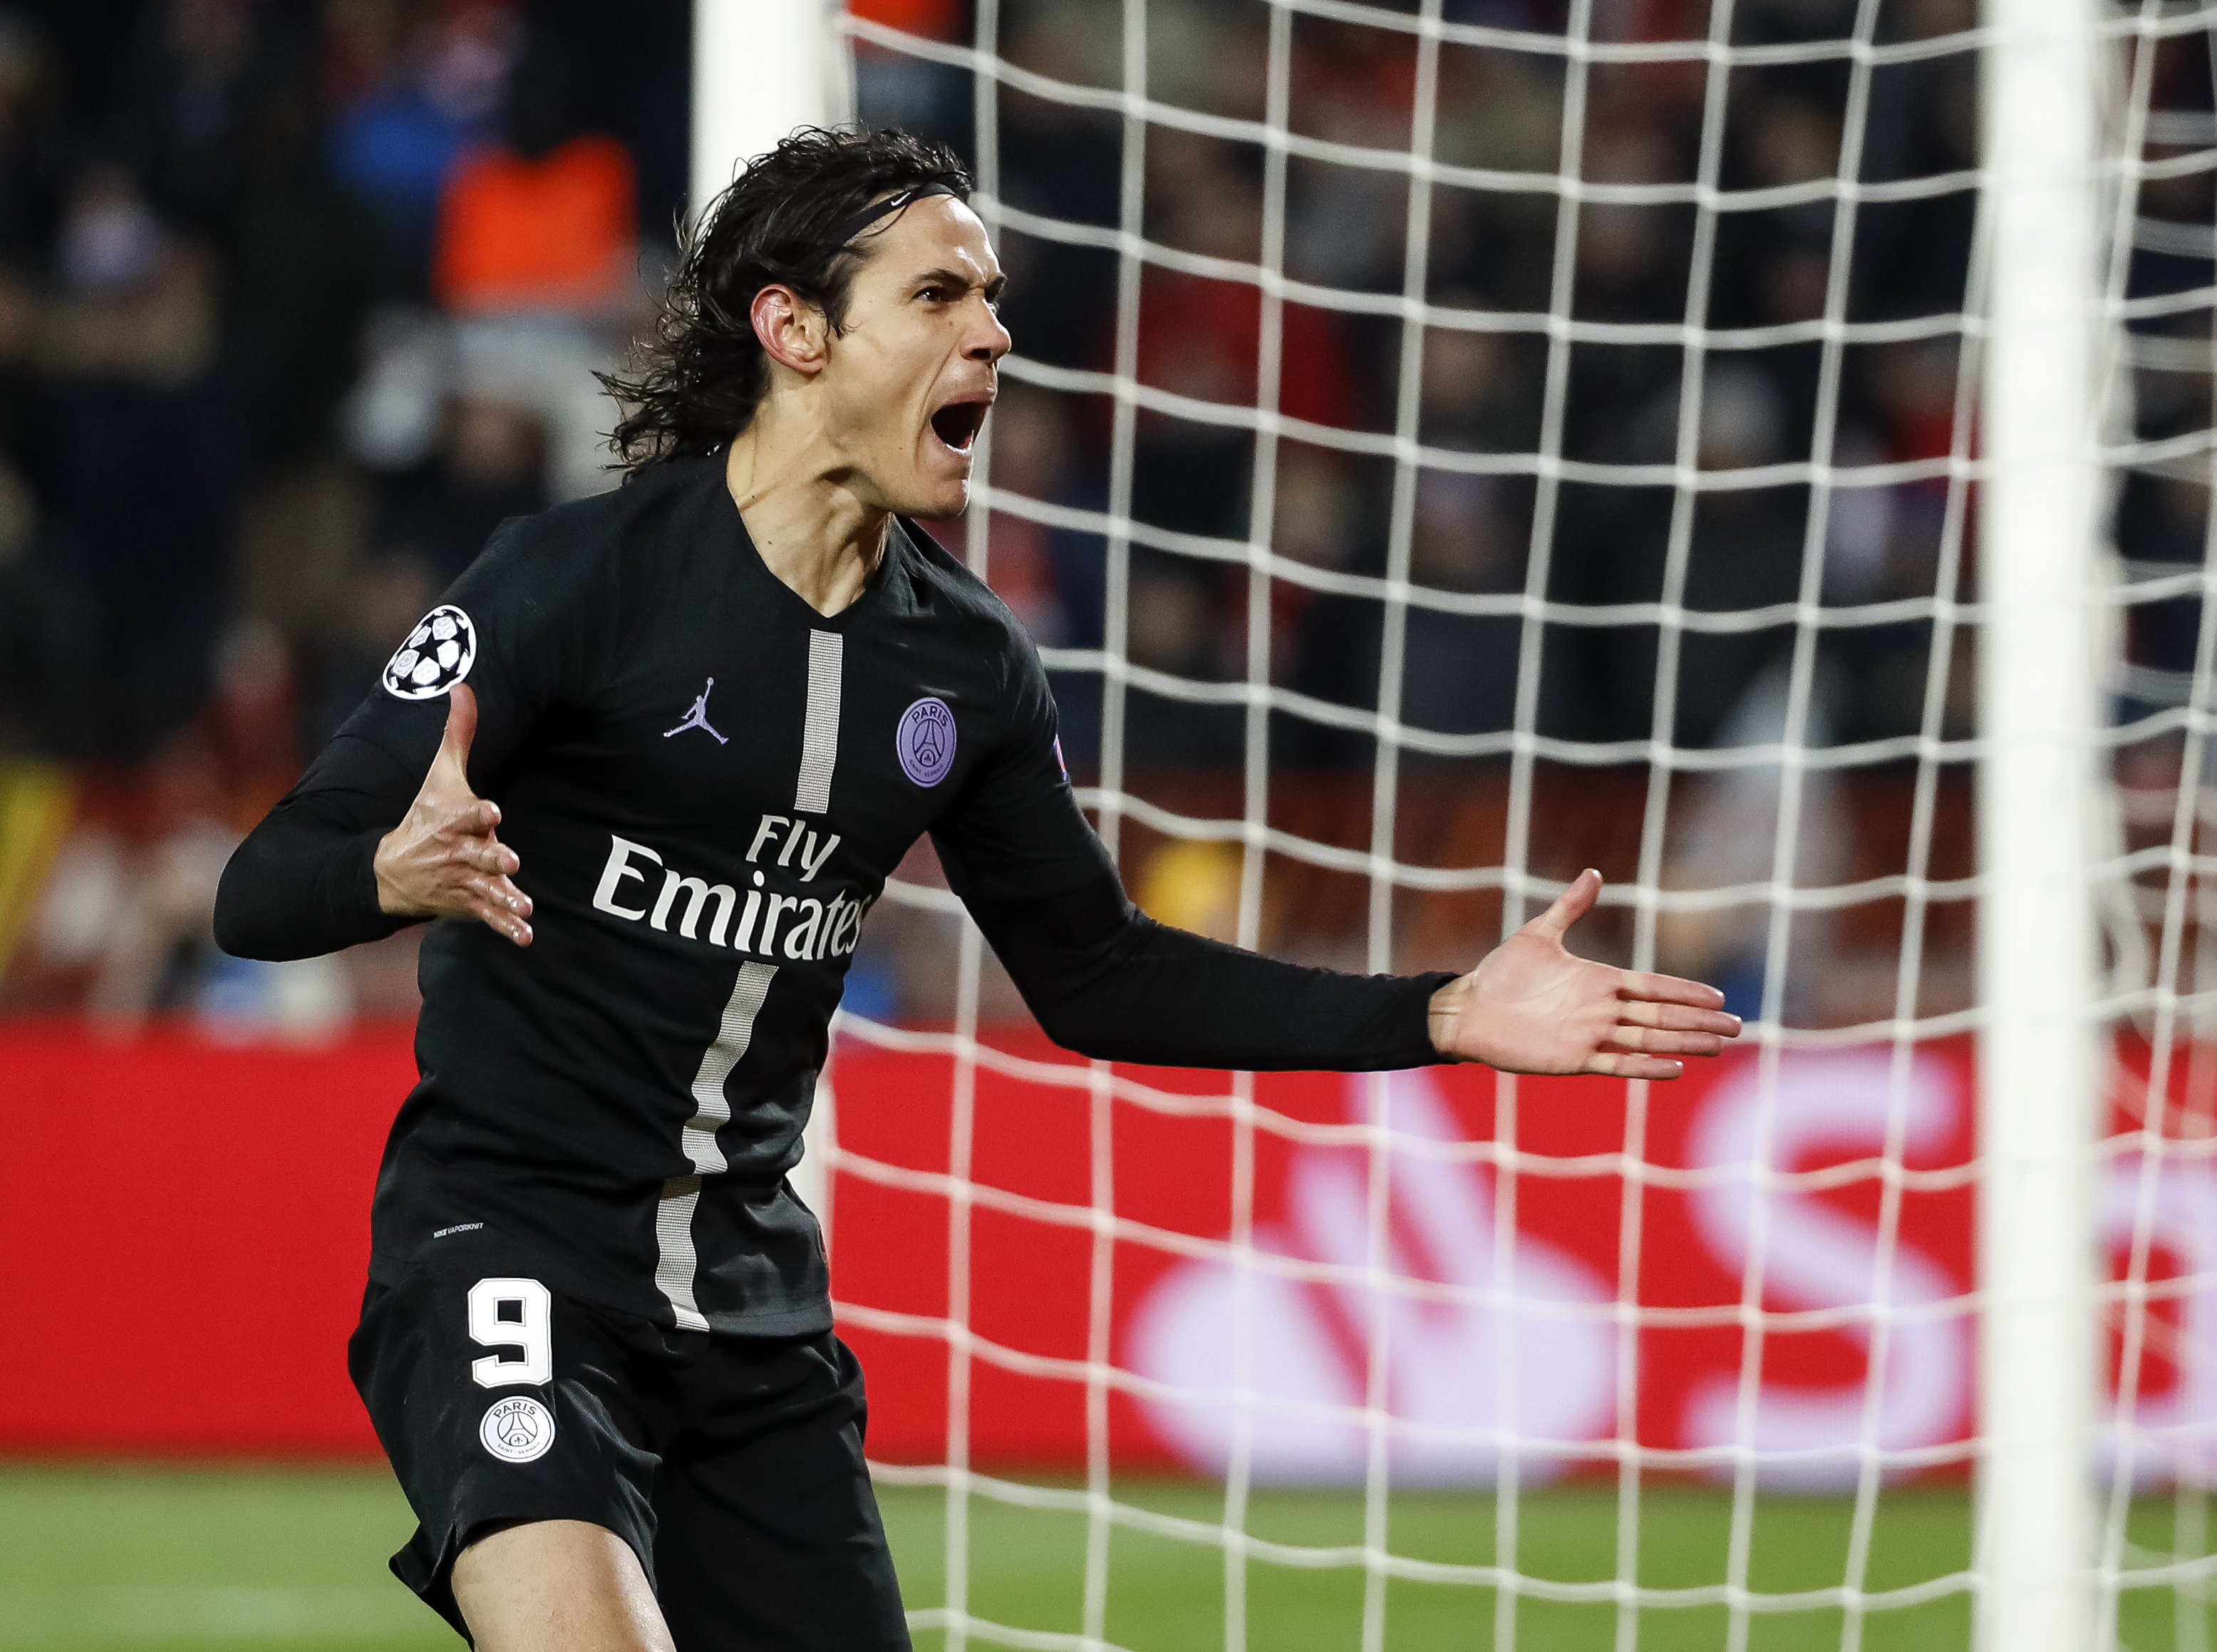 PSG's Cavani out of Man Utd game with torn thigh muscle: pressed